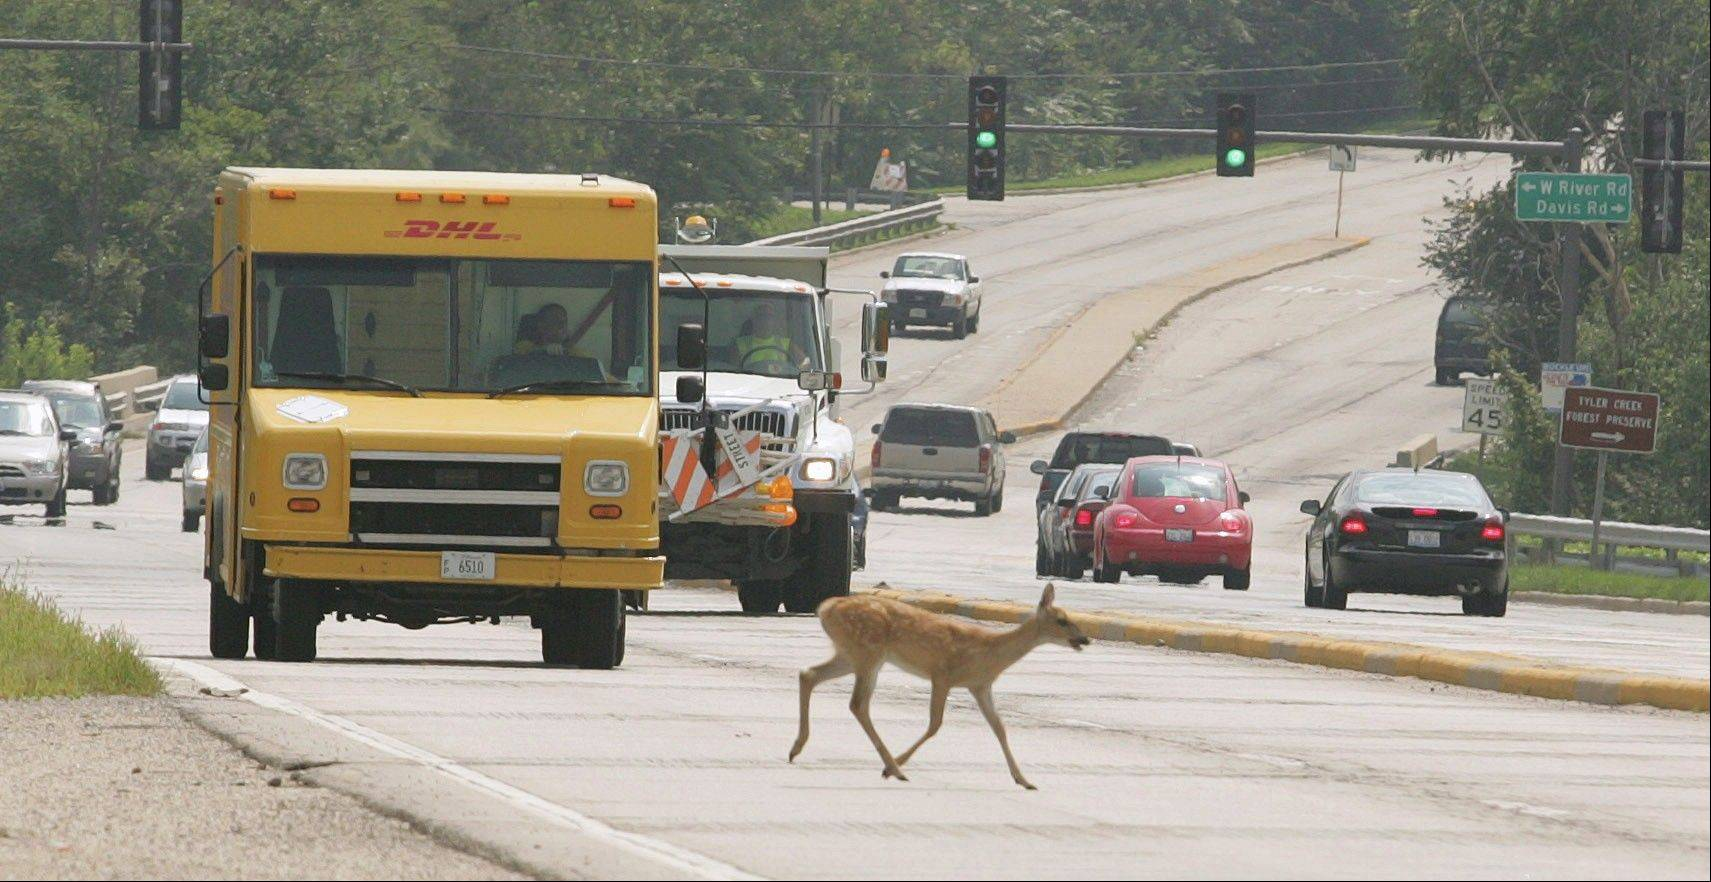 A doe makes a brave dash across Route 31 in Elgin. Illinois ranks third in the nation for deer-crash collisions.